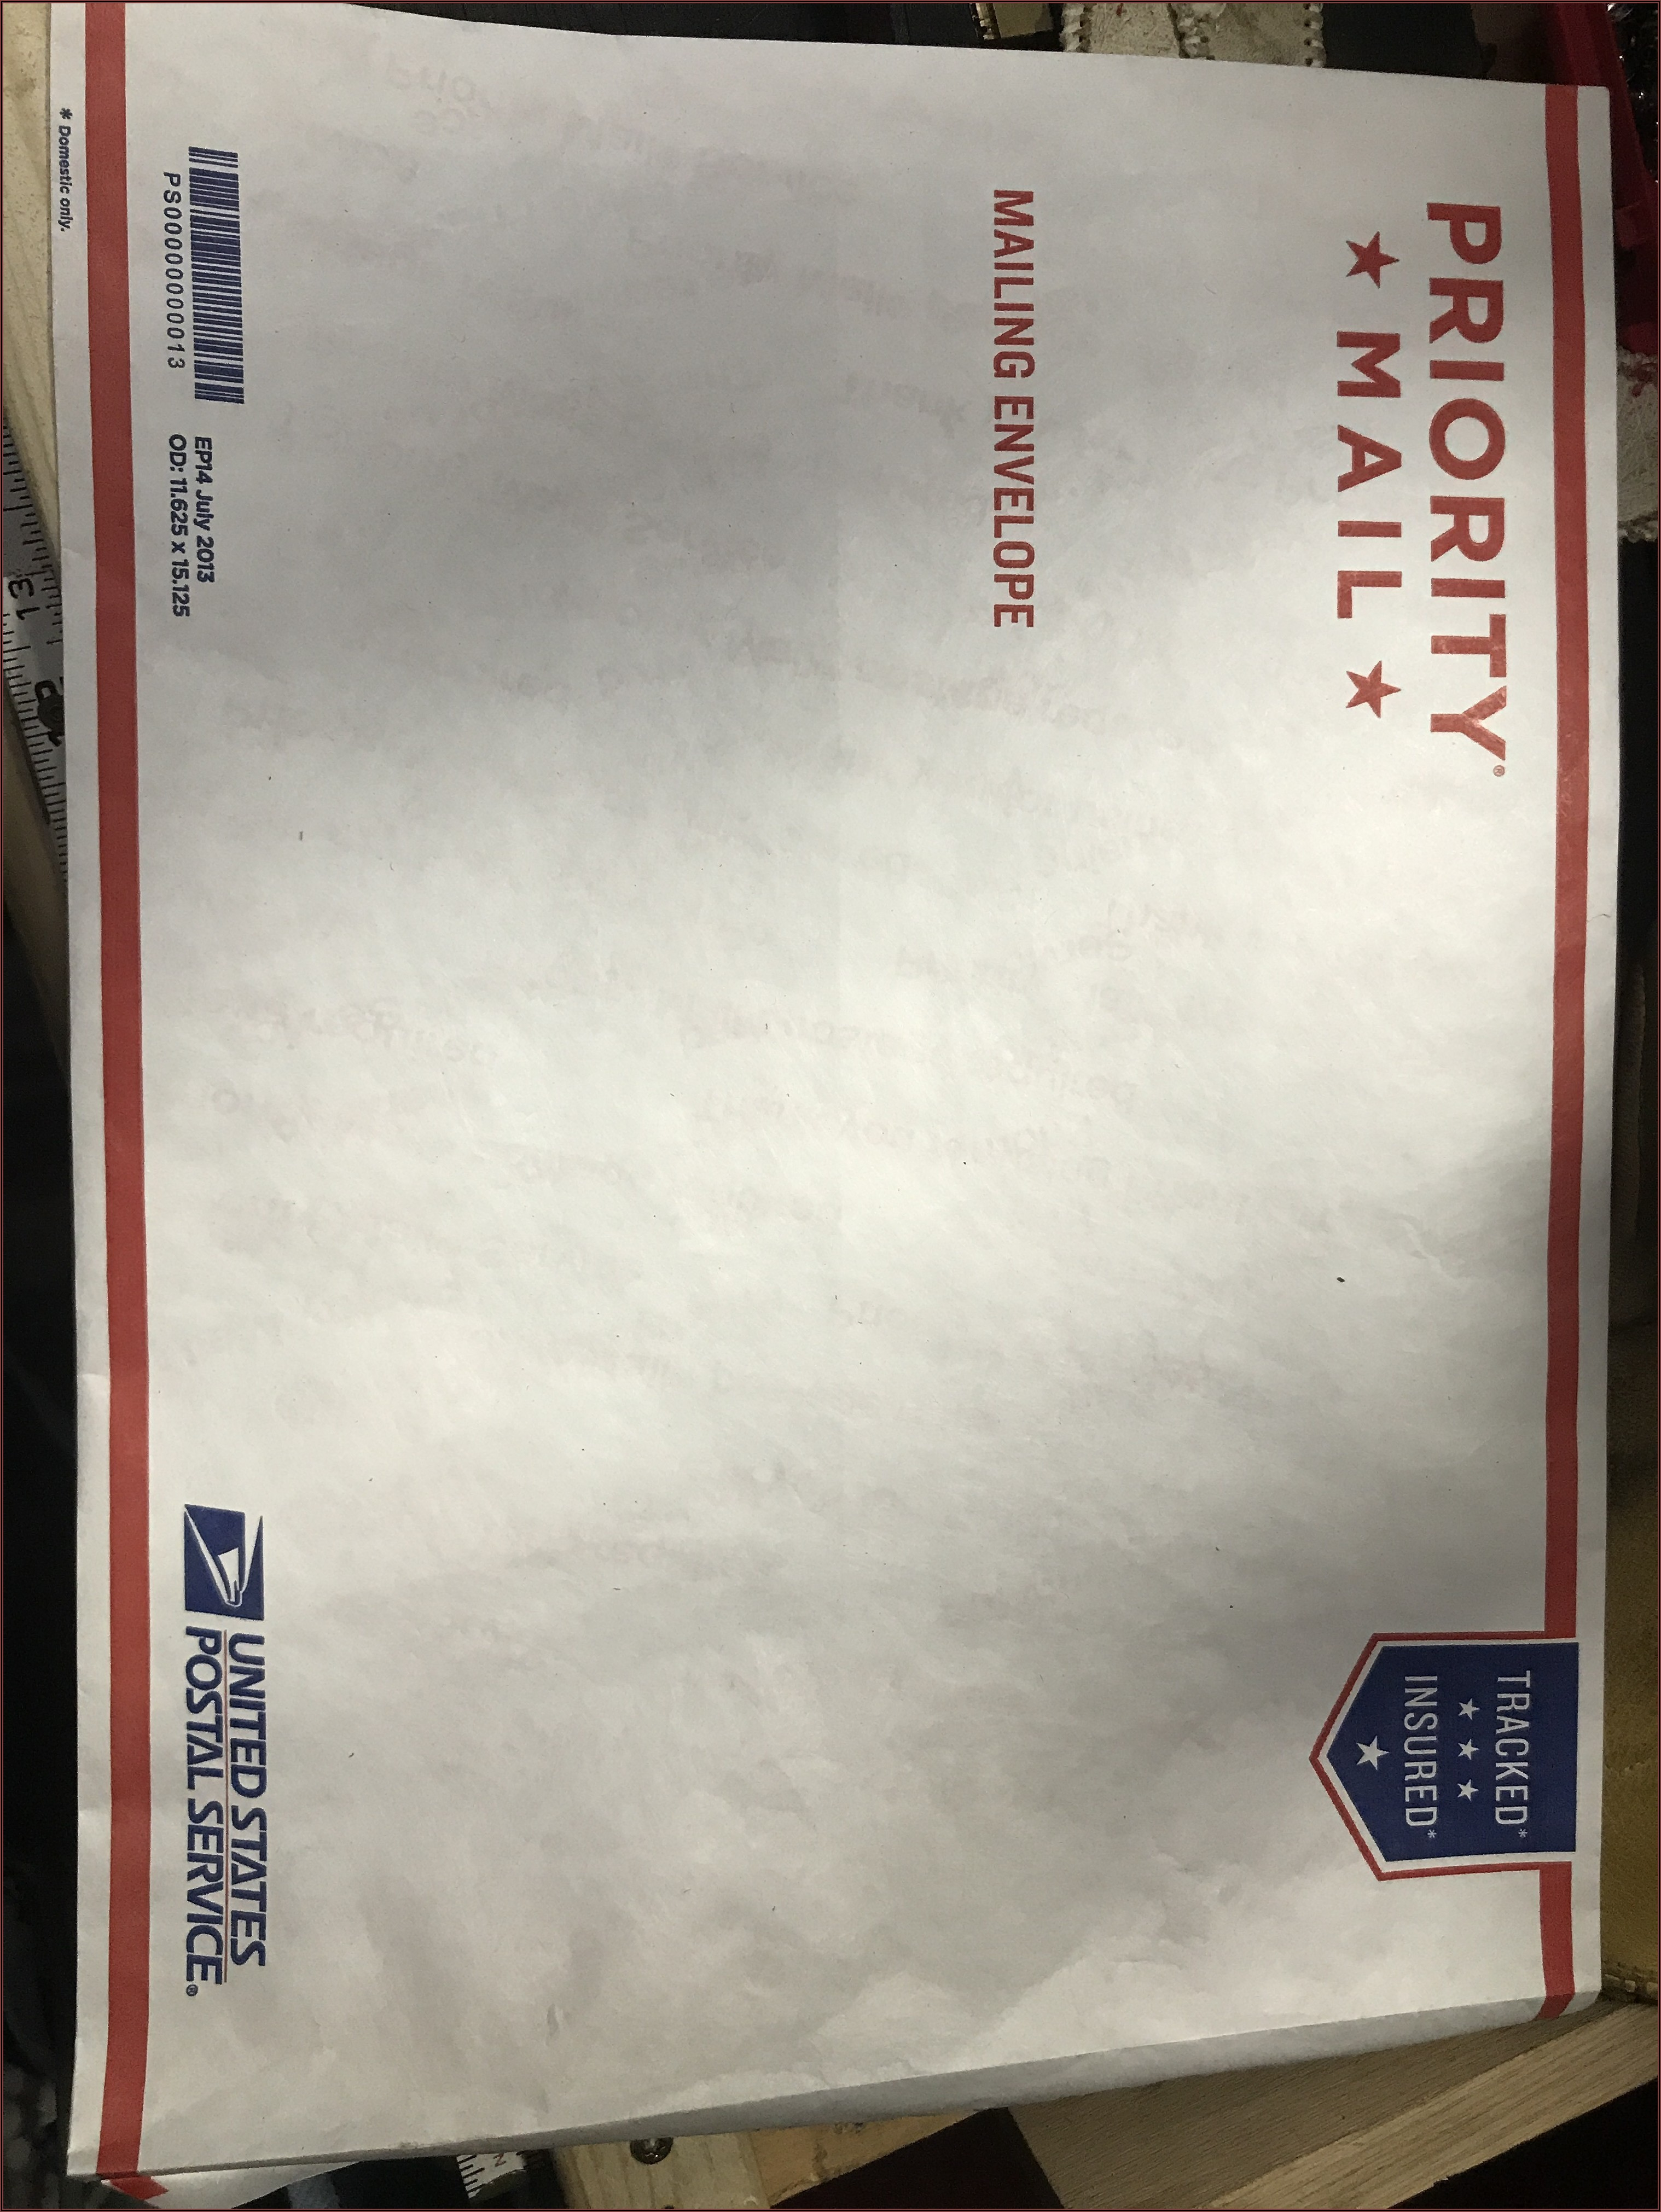 Usps Priority Mail Legal Flat Rate Envelope Size